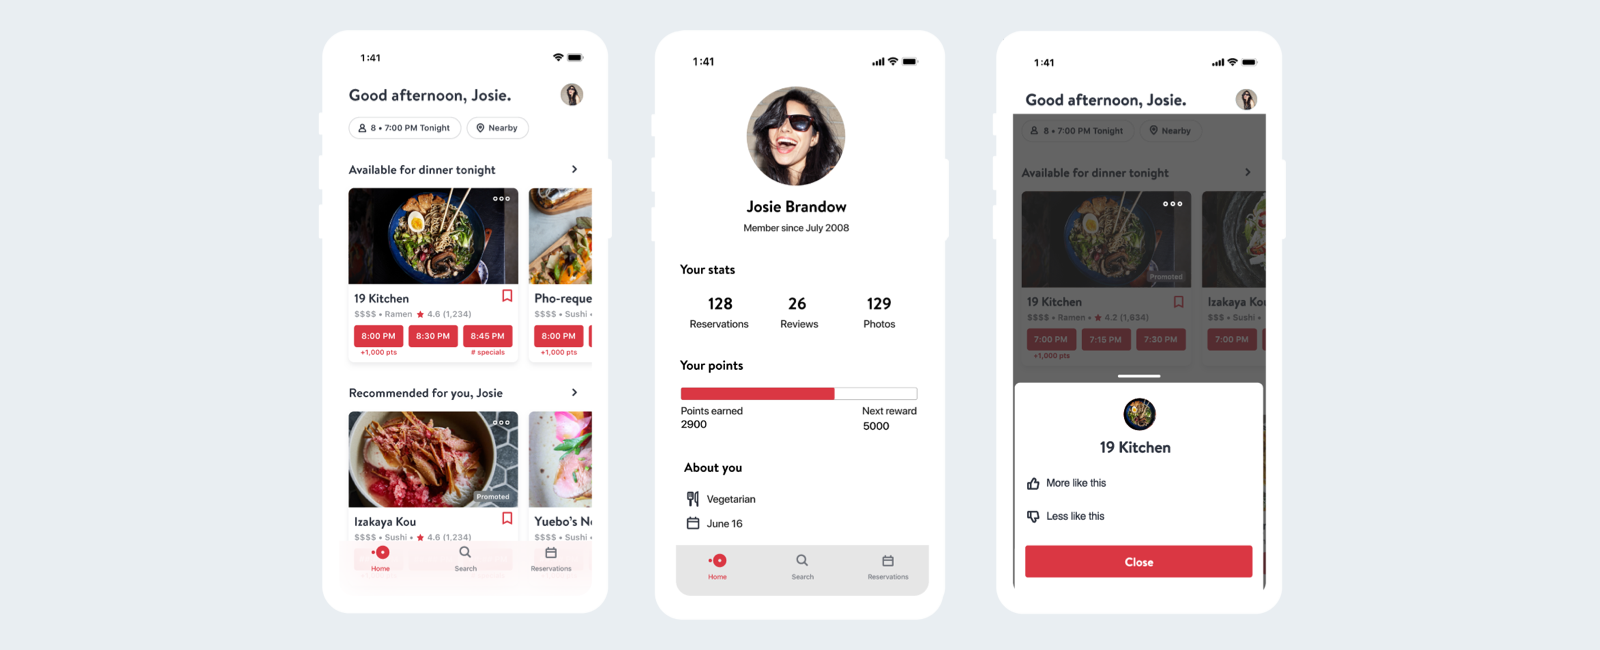 Introducing the New Personalized OpenTable App Experience